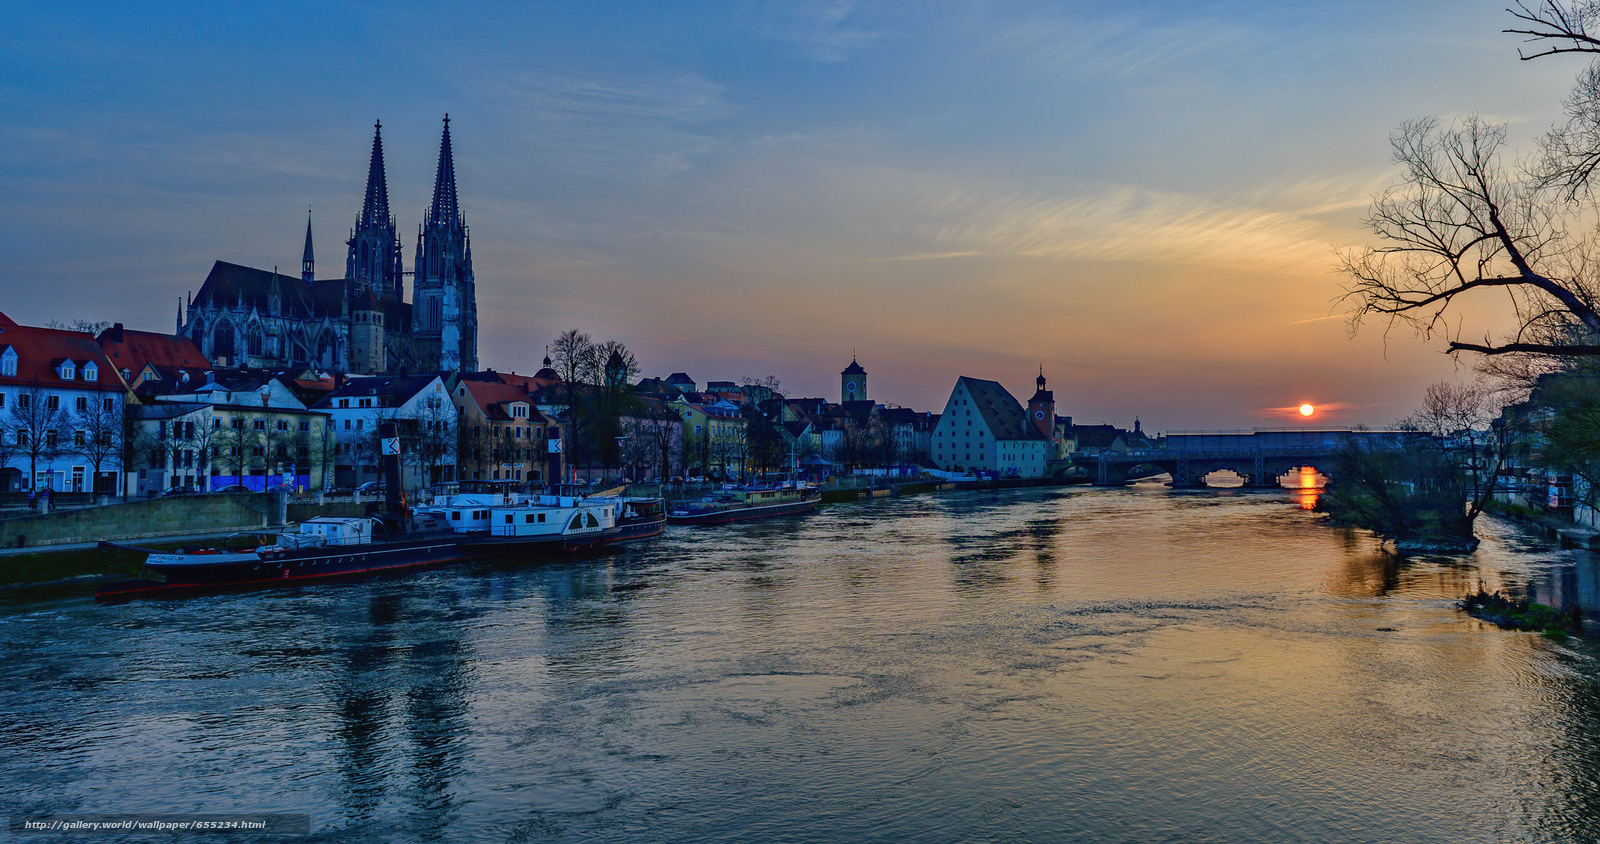 Download wallpaper The Danube River,  Regensburg,  St. Peter's House free desktop wallpaper in the resolution 2048x1080 — picture №655234